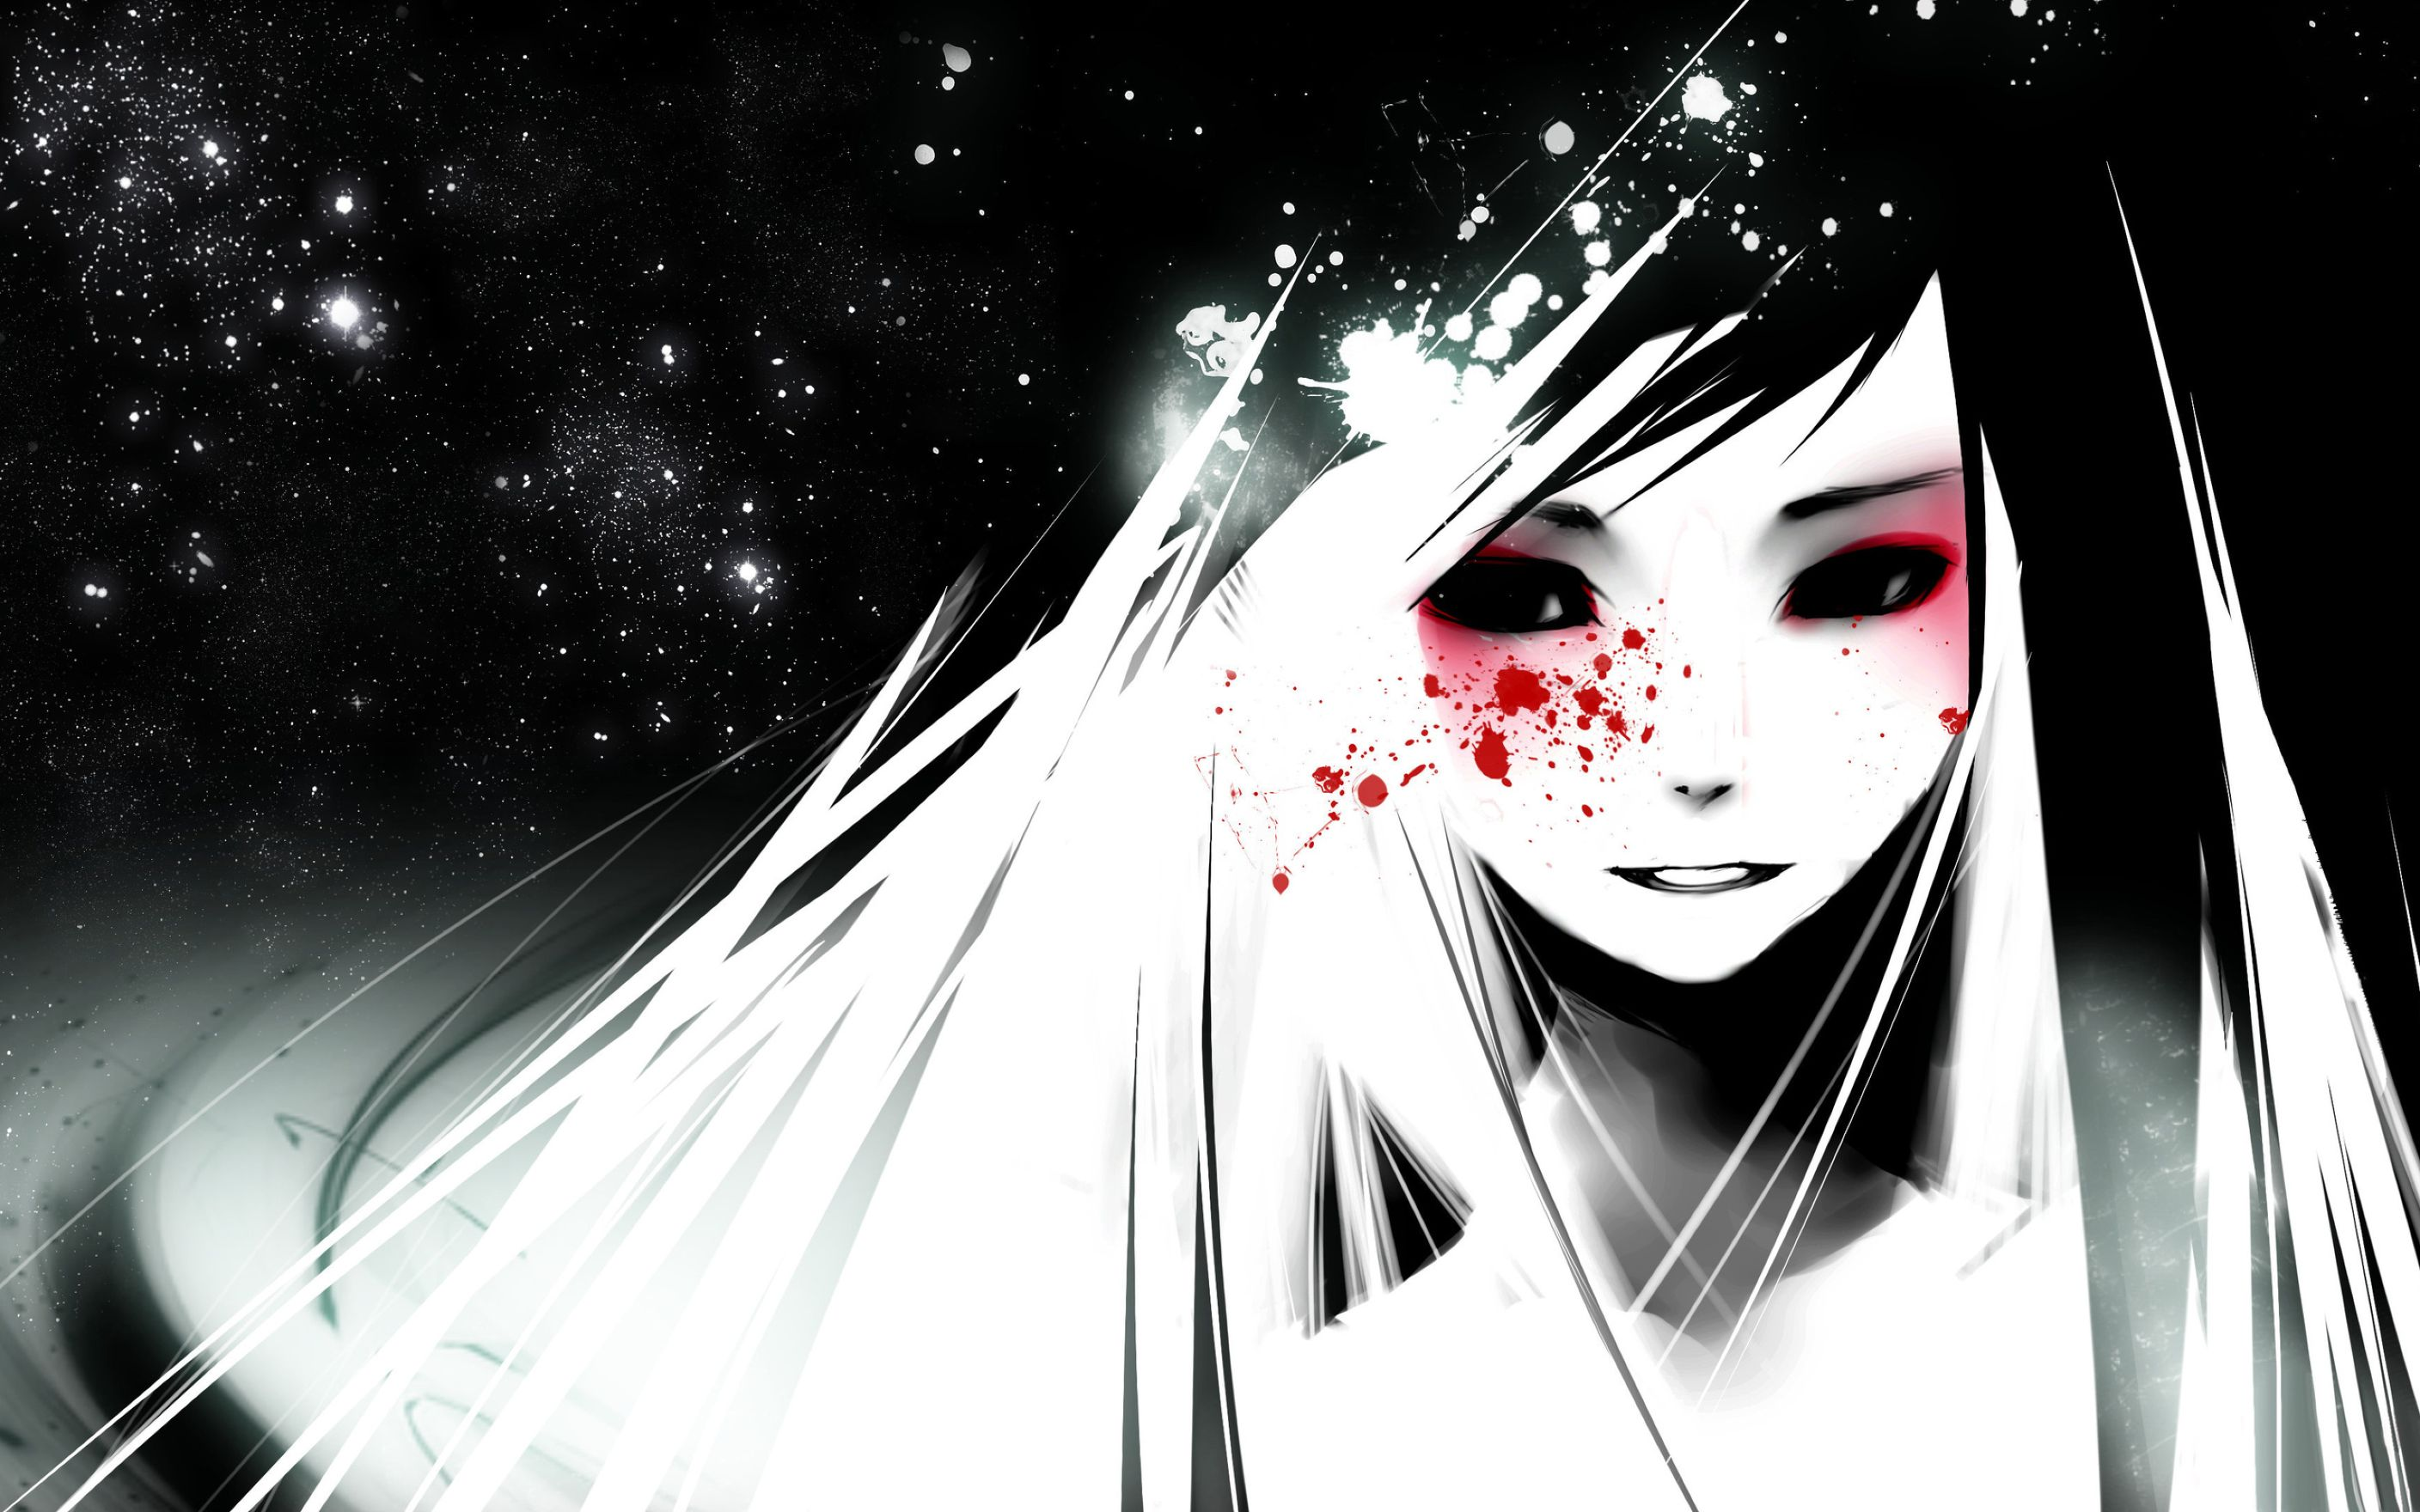 Anime Black and White Wallpaper: Desktop HD Wallpaper - Download